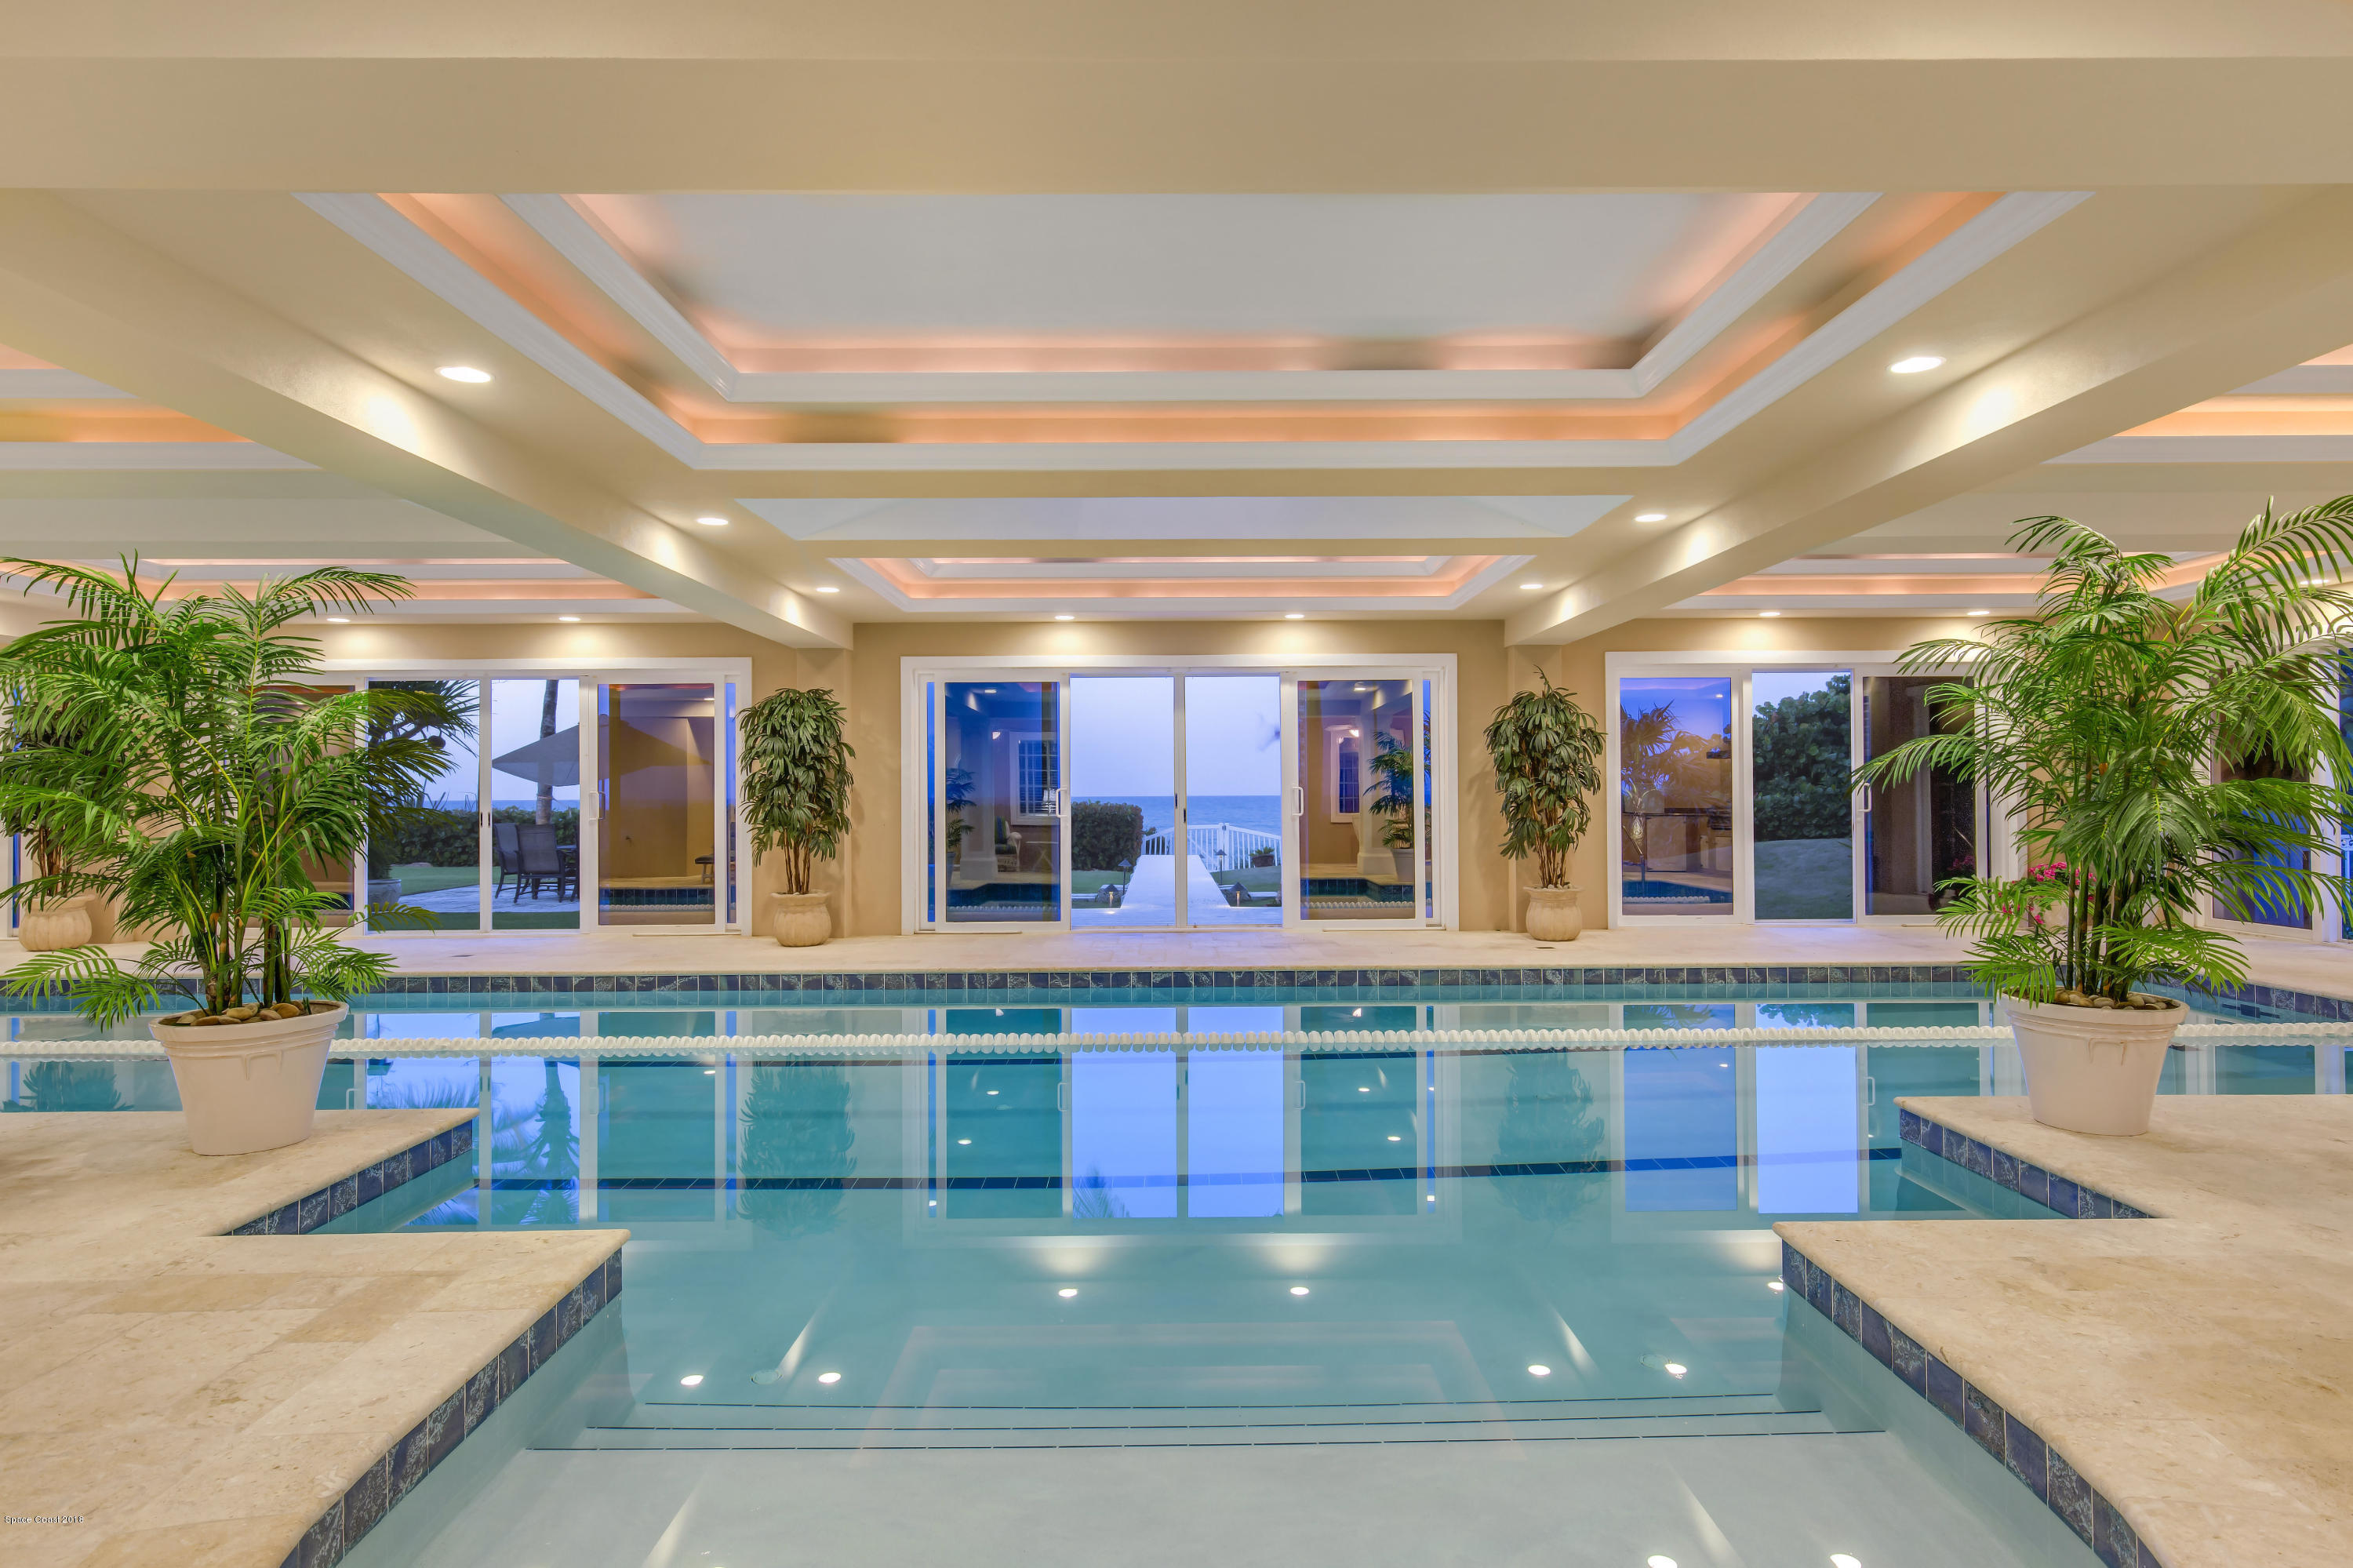 Additional photo for property listing at 5045 S Highway A1a 5045 S Highway A1a Melbourne Beach, Florida 32951 United States